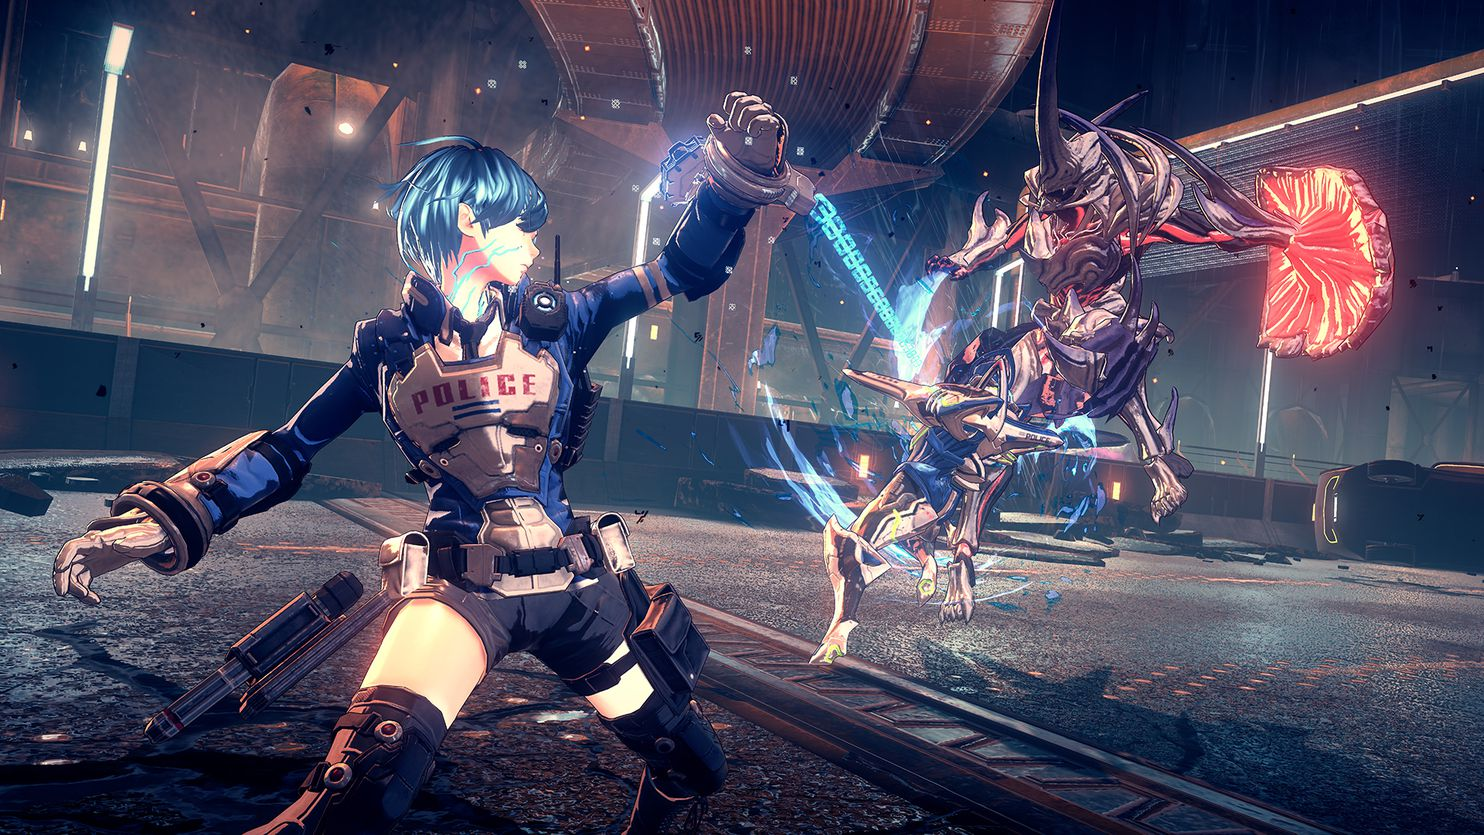 Platinum talks Astral Chain's development, trial and error, working with Nintendo, game difficulty, and more